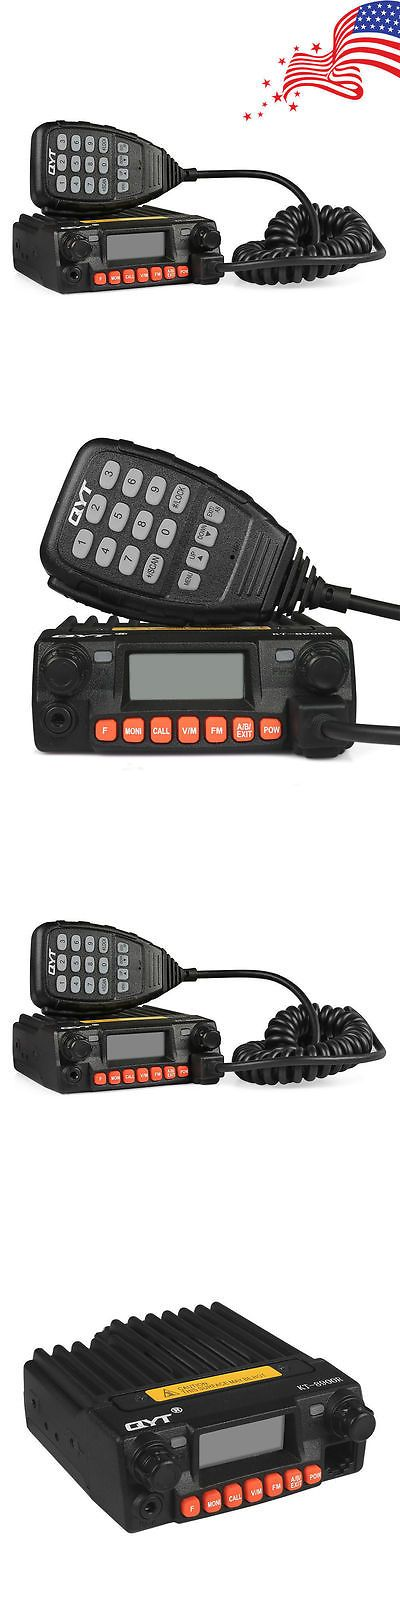 Ham Radio Transceivers: Qyt Kt-8900R Upgraded Tri-Band Car Radio 25W Mobile Vox Transceiver +Car Charger -> BUY IT NOW ONLY: $98.79 on eBay!